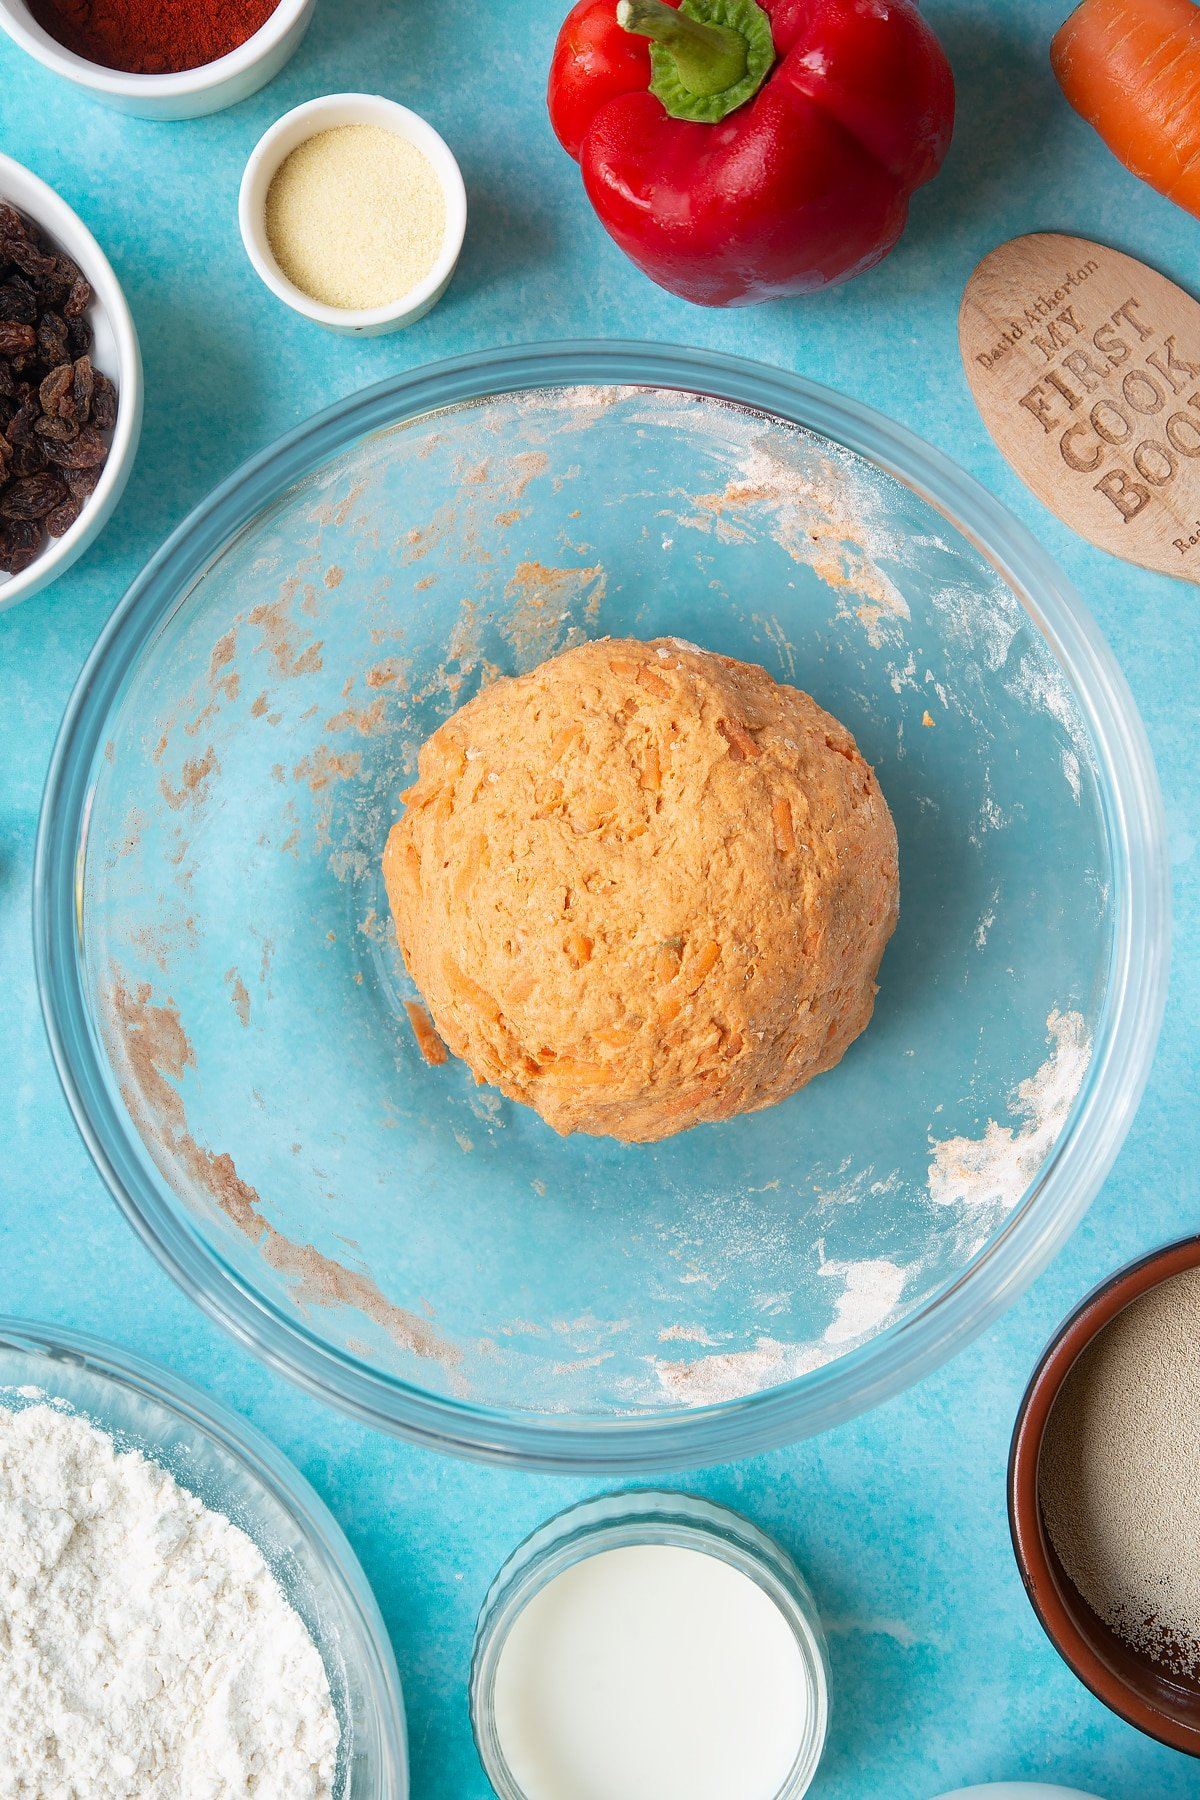 Paprika and carrot bread dough in a mixing bowl. Ingredients to make bread snakes surround the bowl.